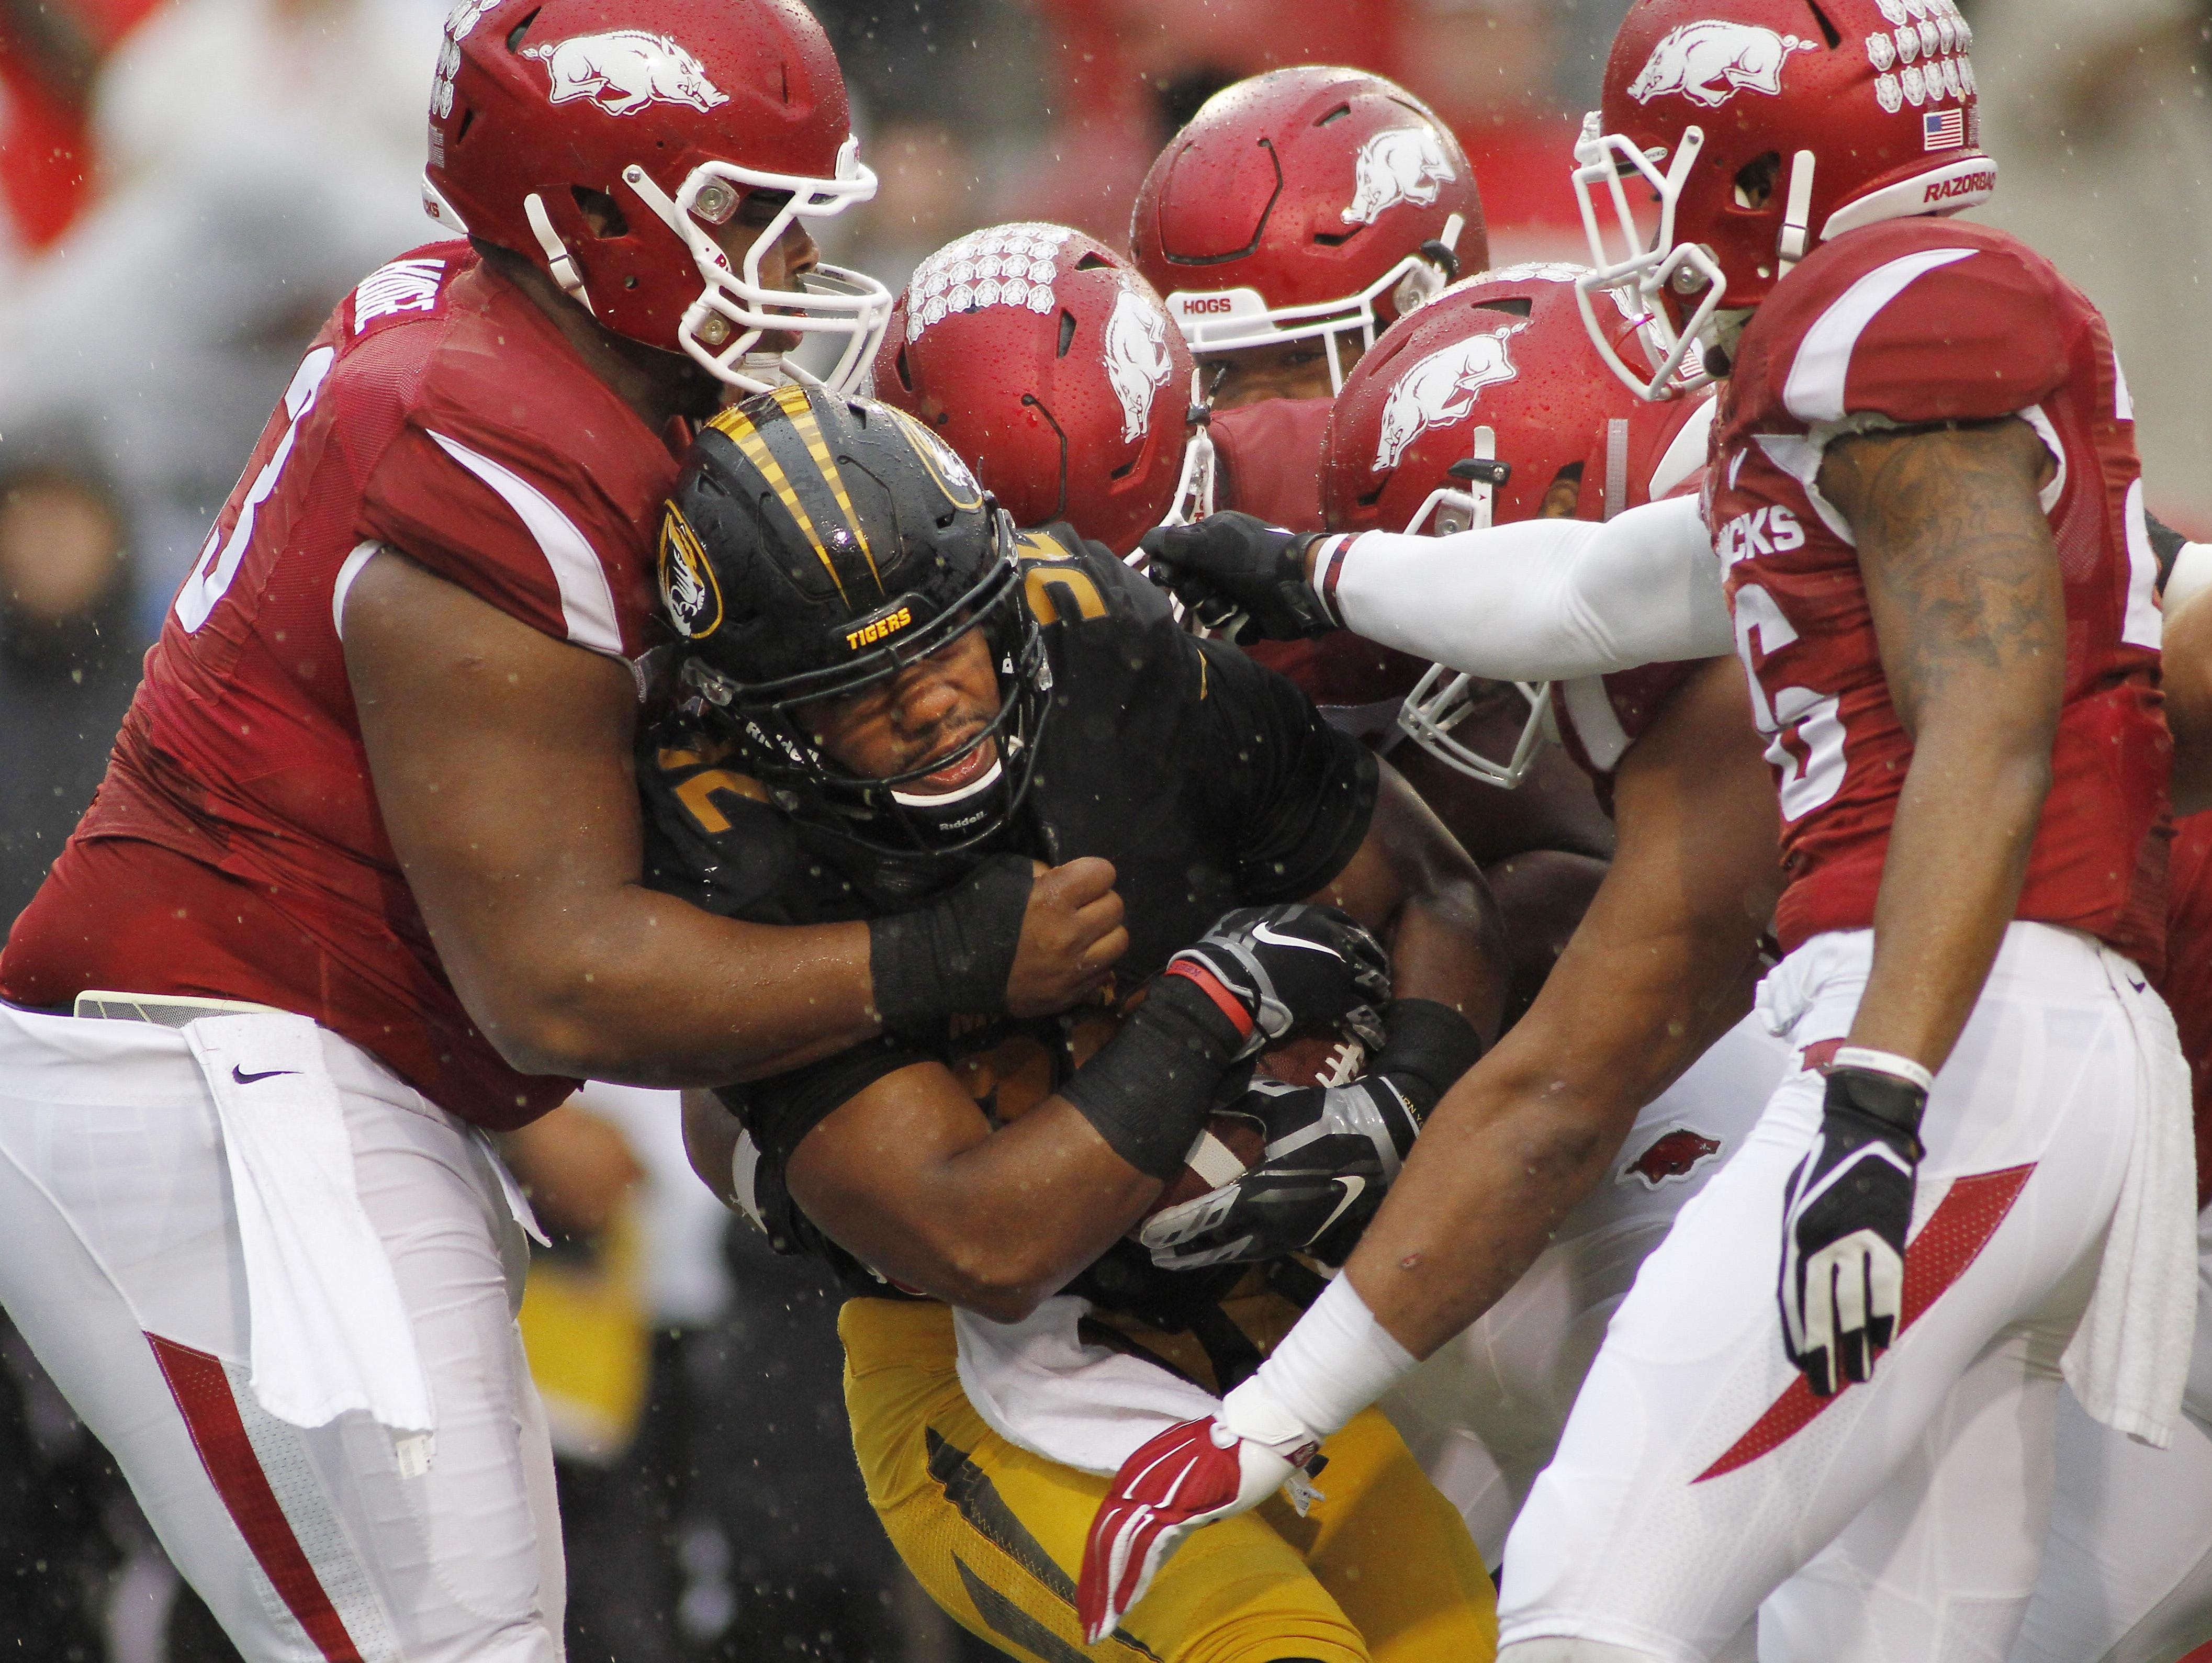 Arkansas' defense collectively takes down Missouri's Russell Hansbrough (32) during the first half on Friday in Fayetteville.